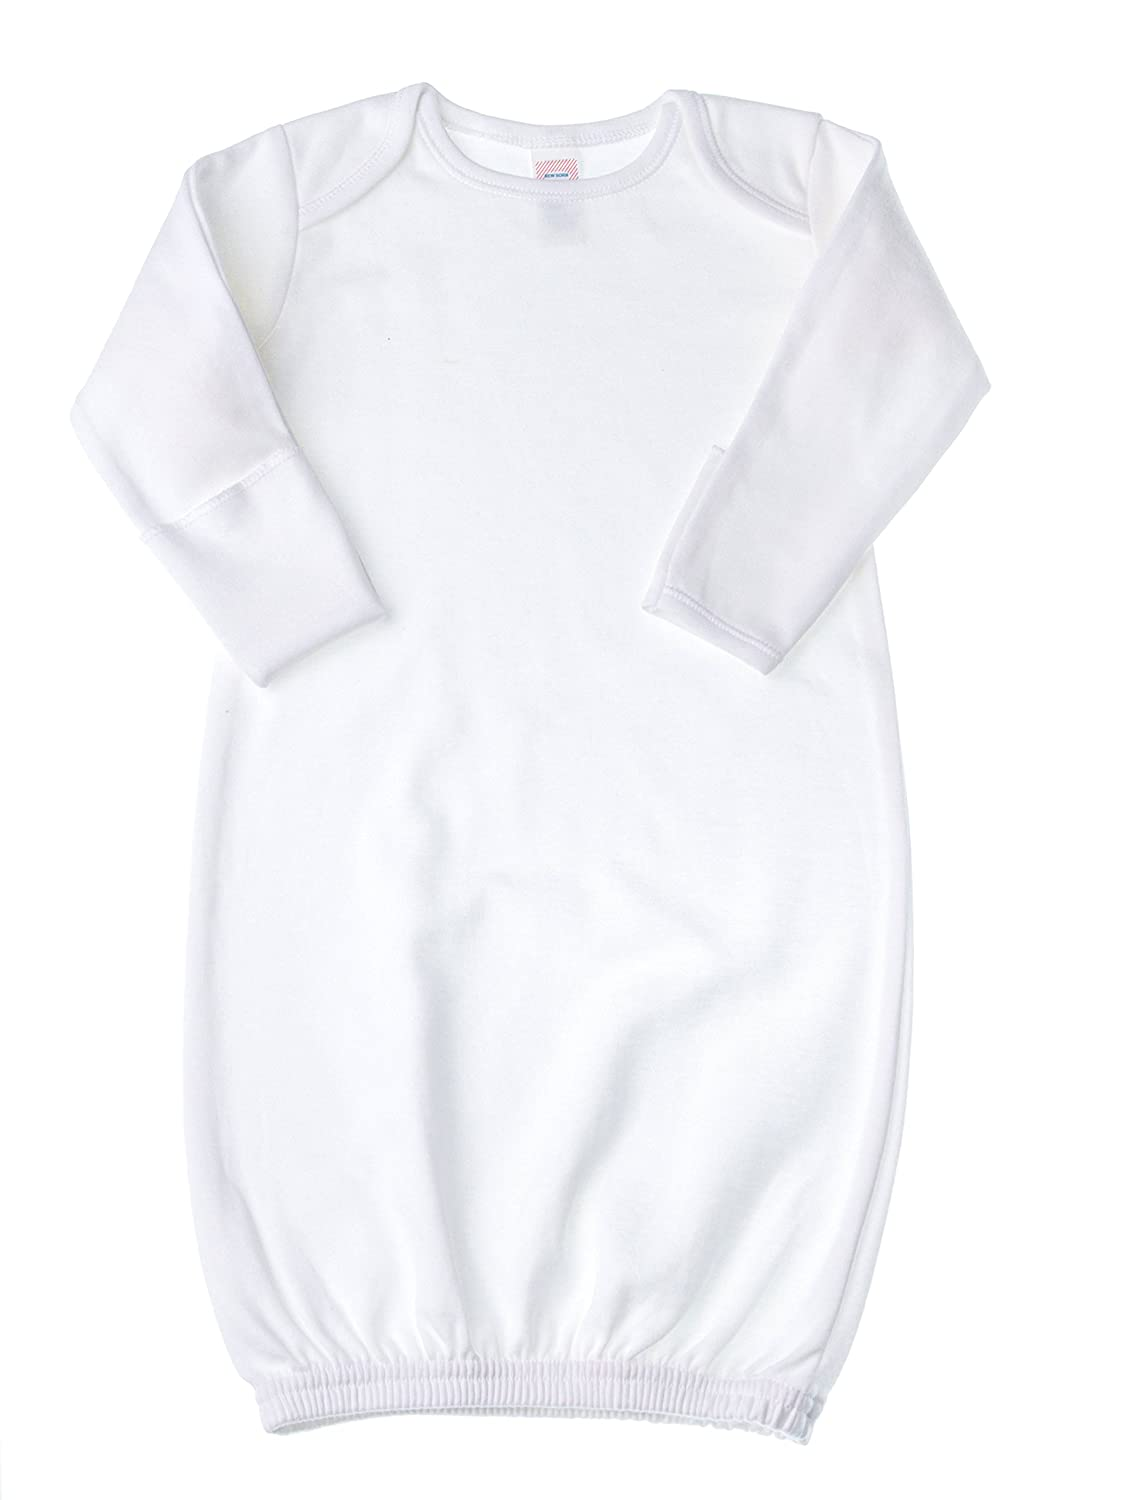 Amazon.com: Baby Jay Newborn Sleeper Gown - White Soft Cotton Baby ...